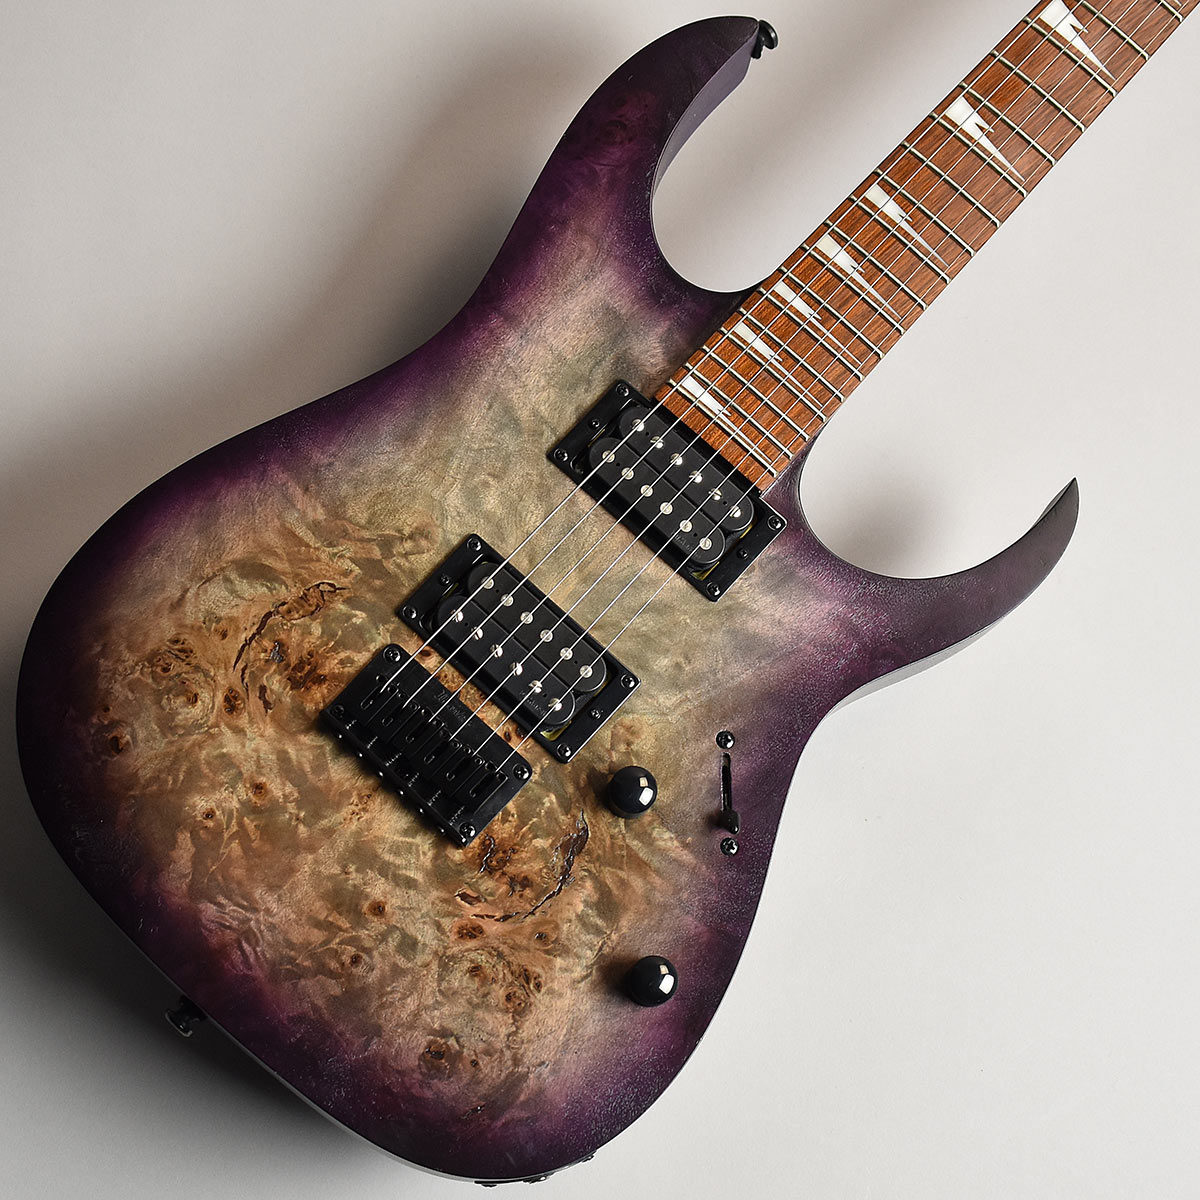 Ibanez RGRT621DPB Transparent Purple Burst RGRT621DPB Flat S Transparent/N:180308064【島村楽器限定販売 Flat】【アイバニーズ 海外モデル】【未展示品】, 生地屋 レイピー:9aeeb9f8 --- jpworks.be